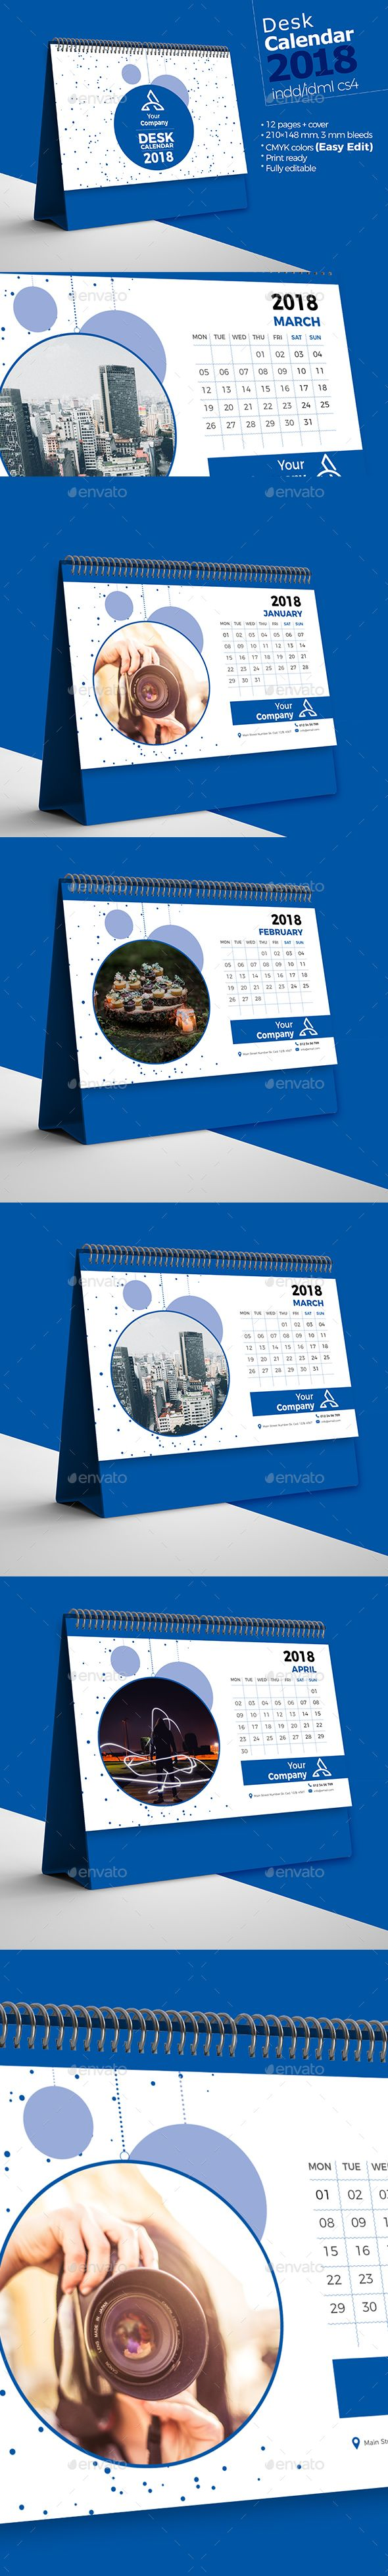 Desk Calendar 2018 — InDesign INDD #cover #event • Available here ➝ https://graphicriver.net/item/desk-calendar-2018/21024030?ref=pxcr